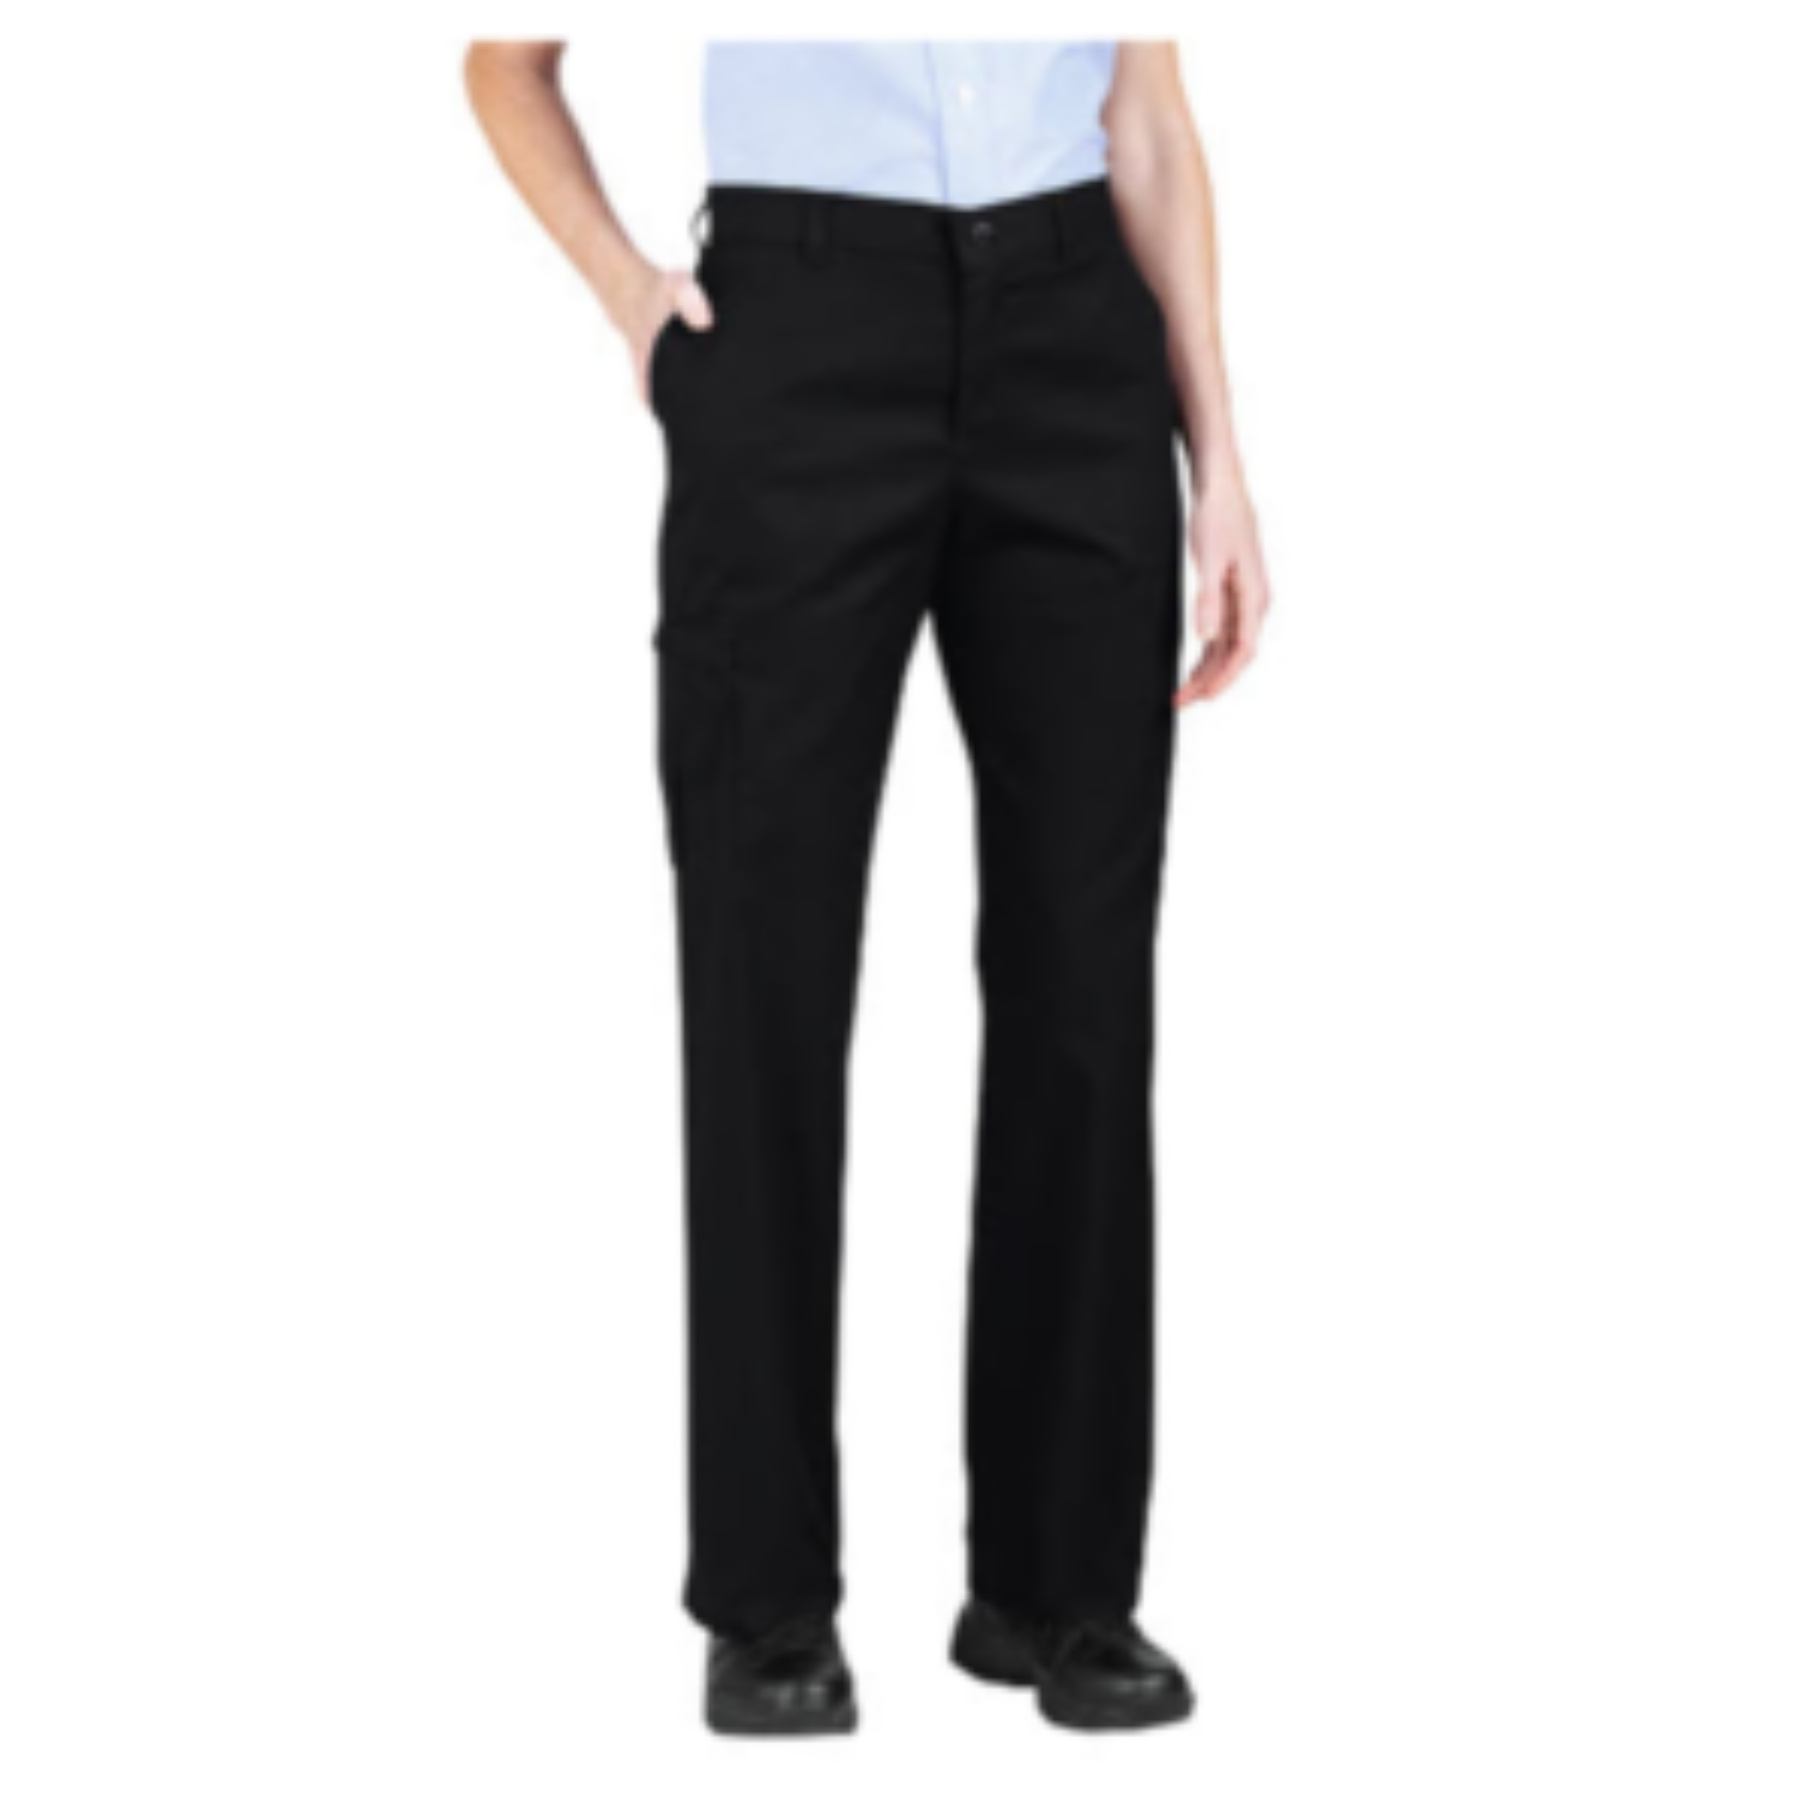 women s relaxed fit exercise pants photo - 1